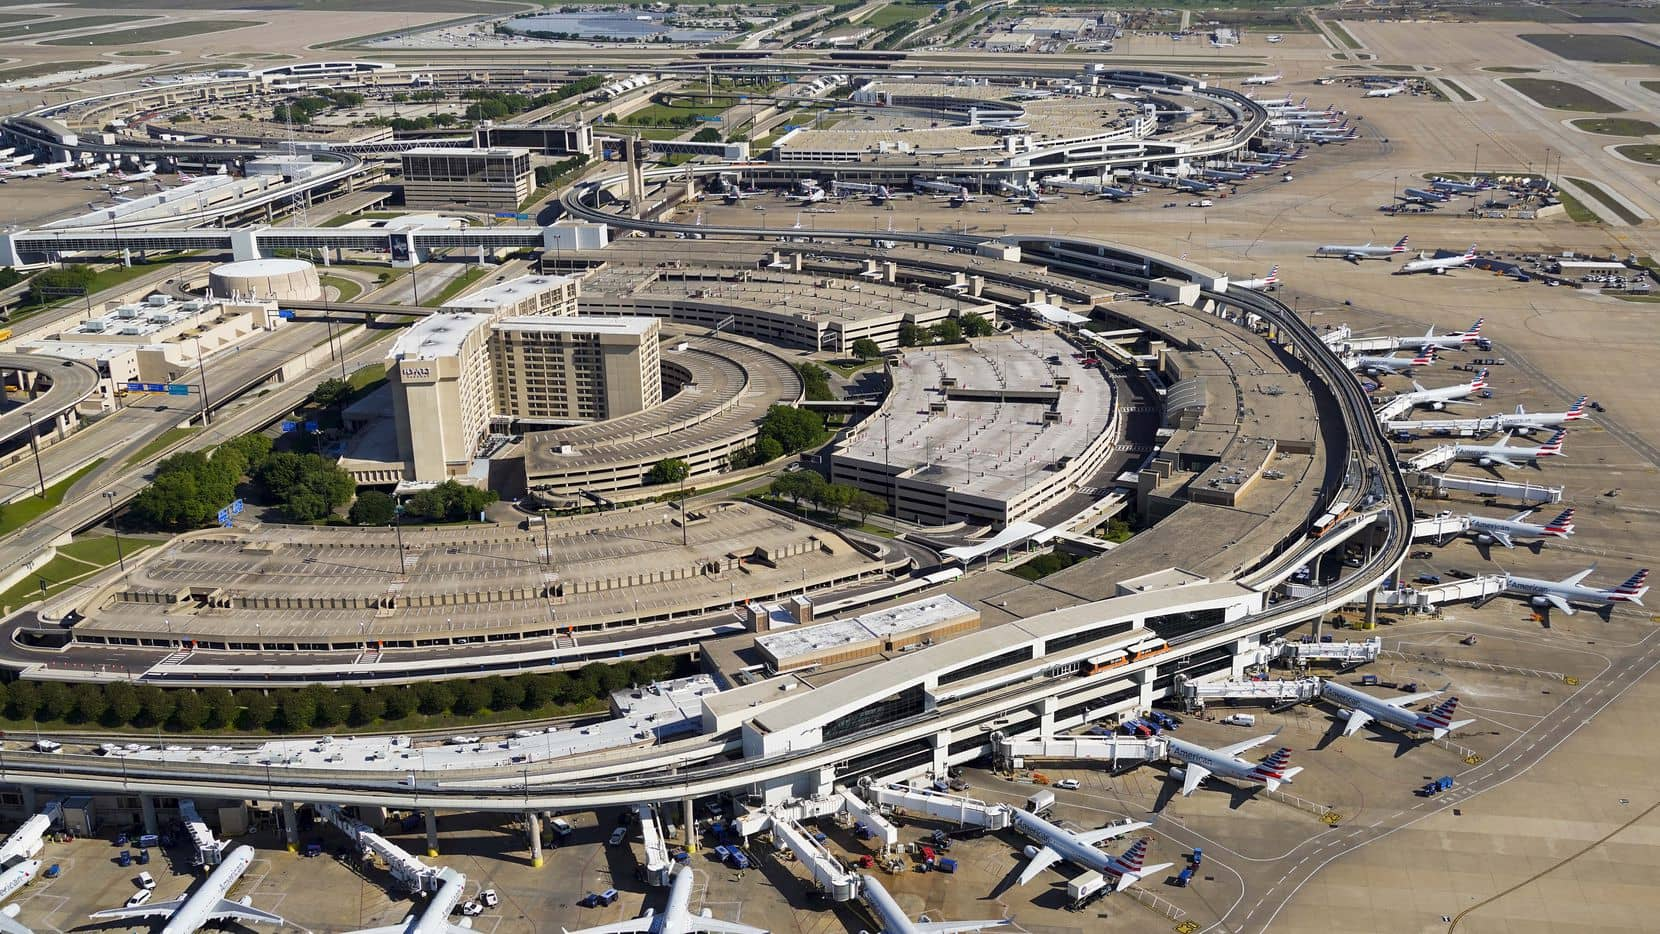 Aeropuerto Internacional de Dallas-Fort Worth, Estados Unidos.